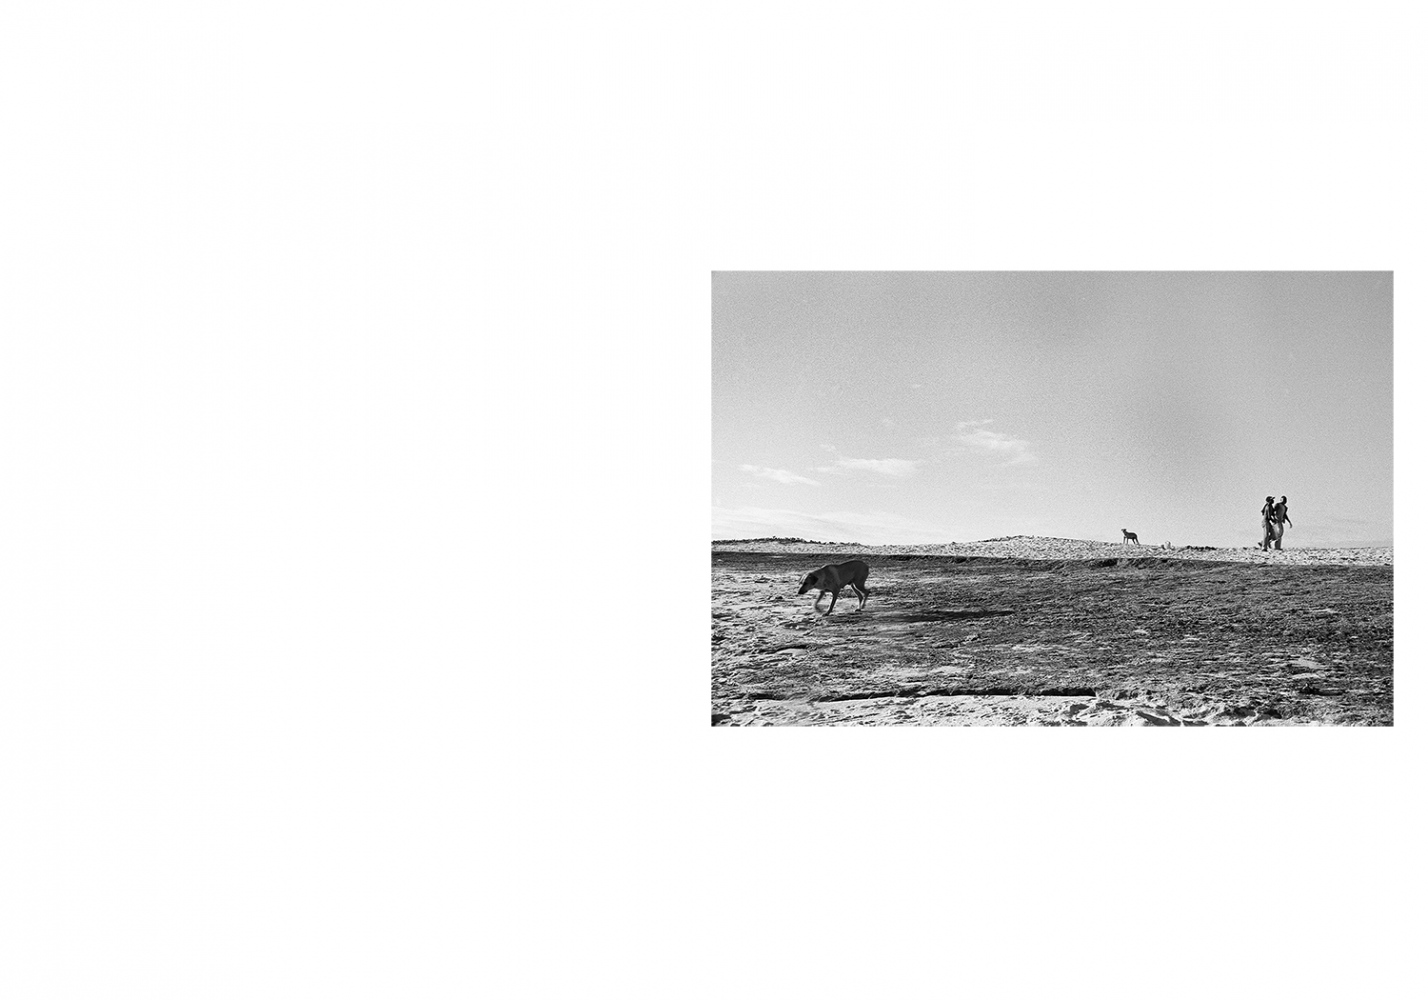 Art and Documentary Photography - Loading Residues_book_layout_004.jpg